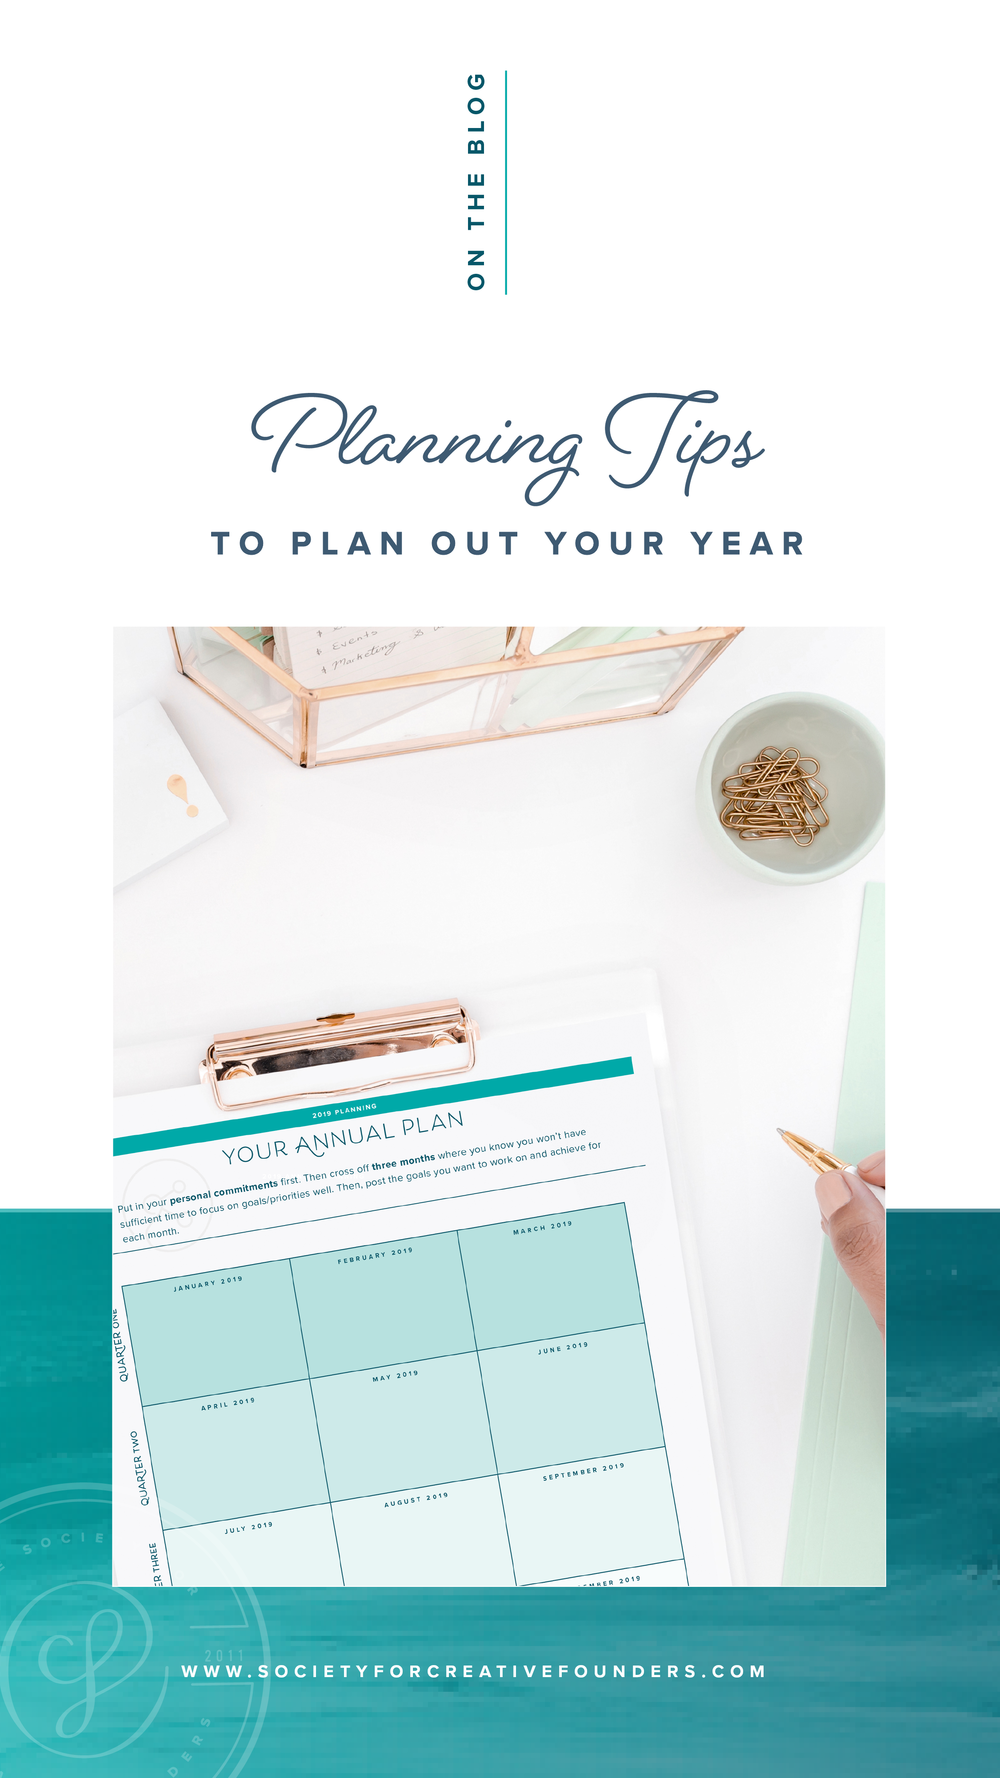 8 Planning Tips to help you plan your Year - Society for Creative Founders